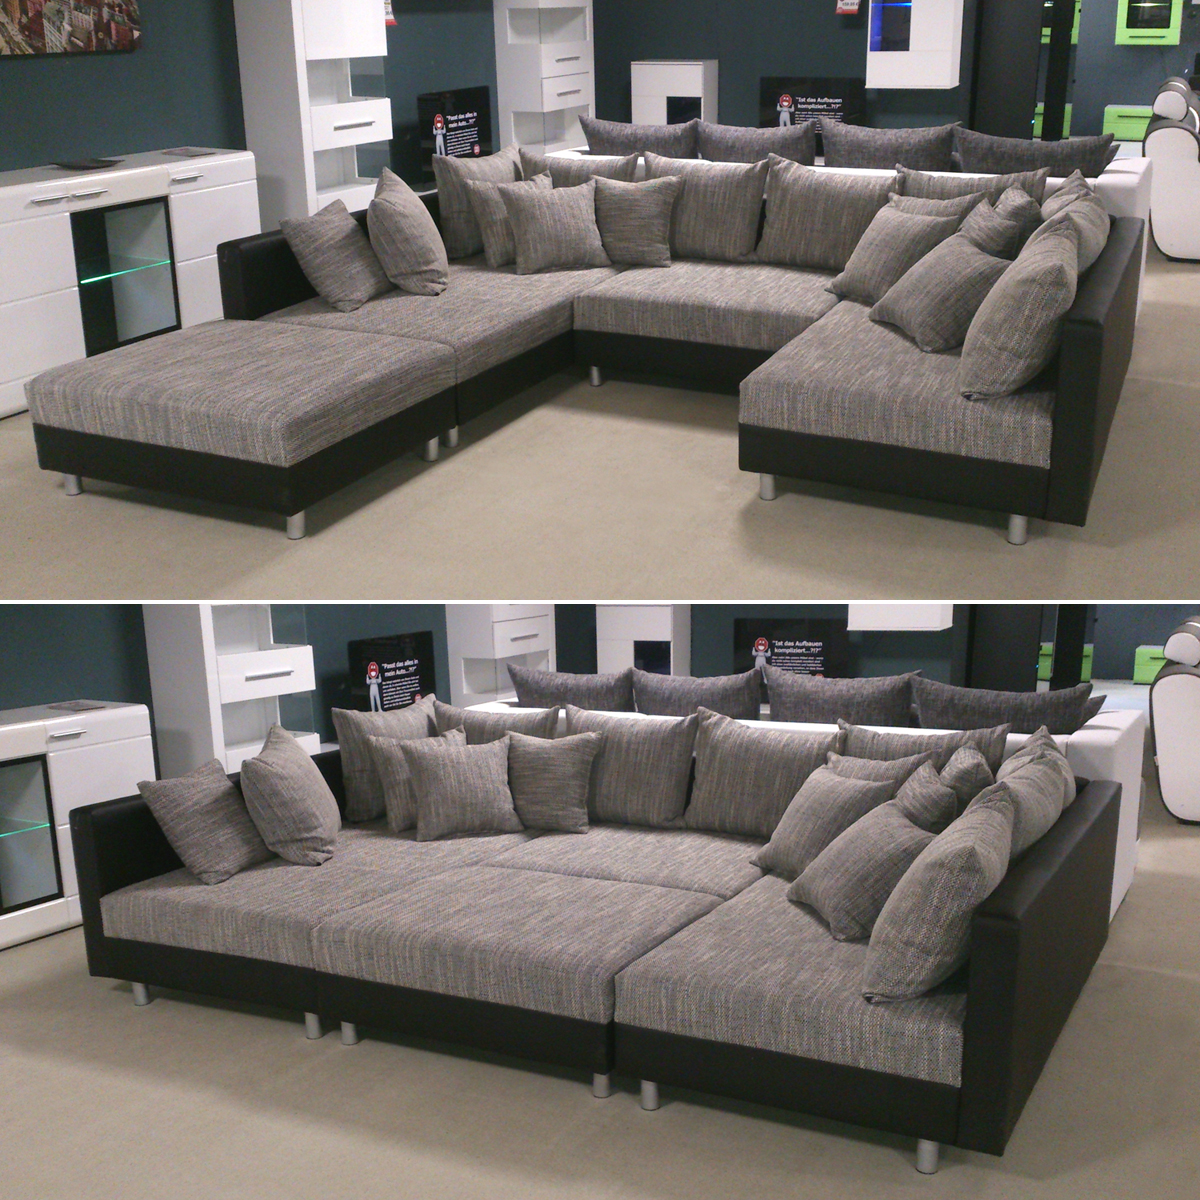 xxl sofa u form design sectional sofa matera xxl with led